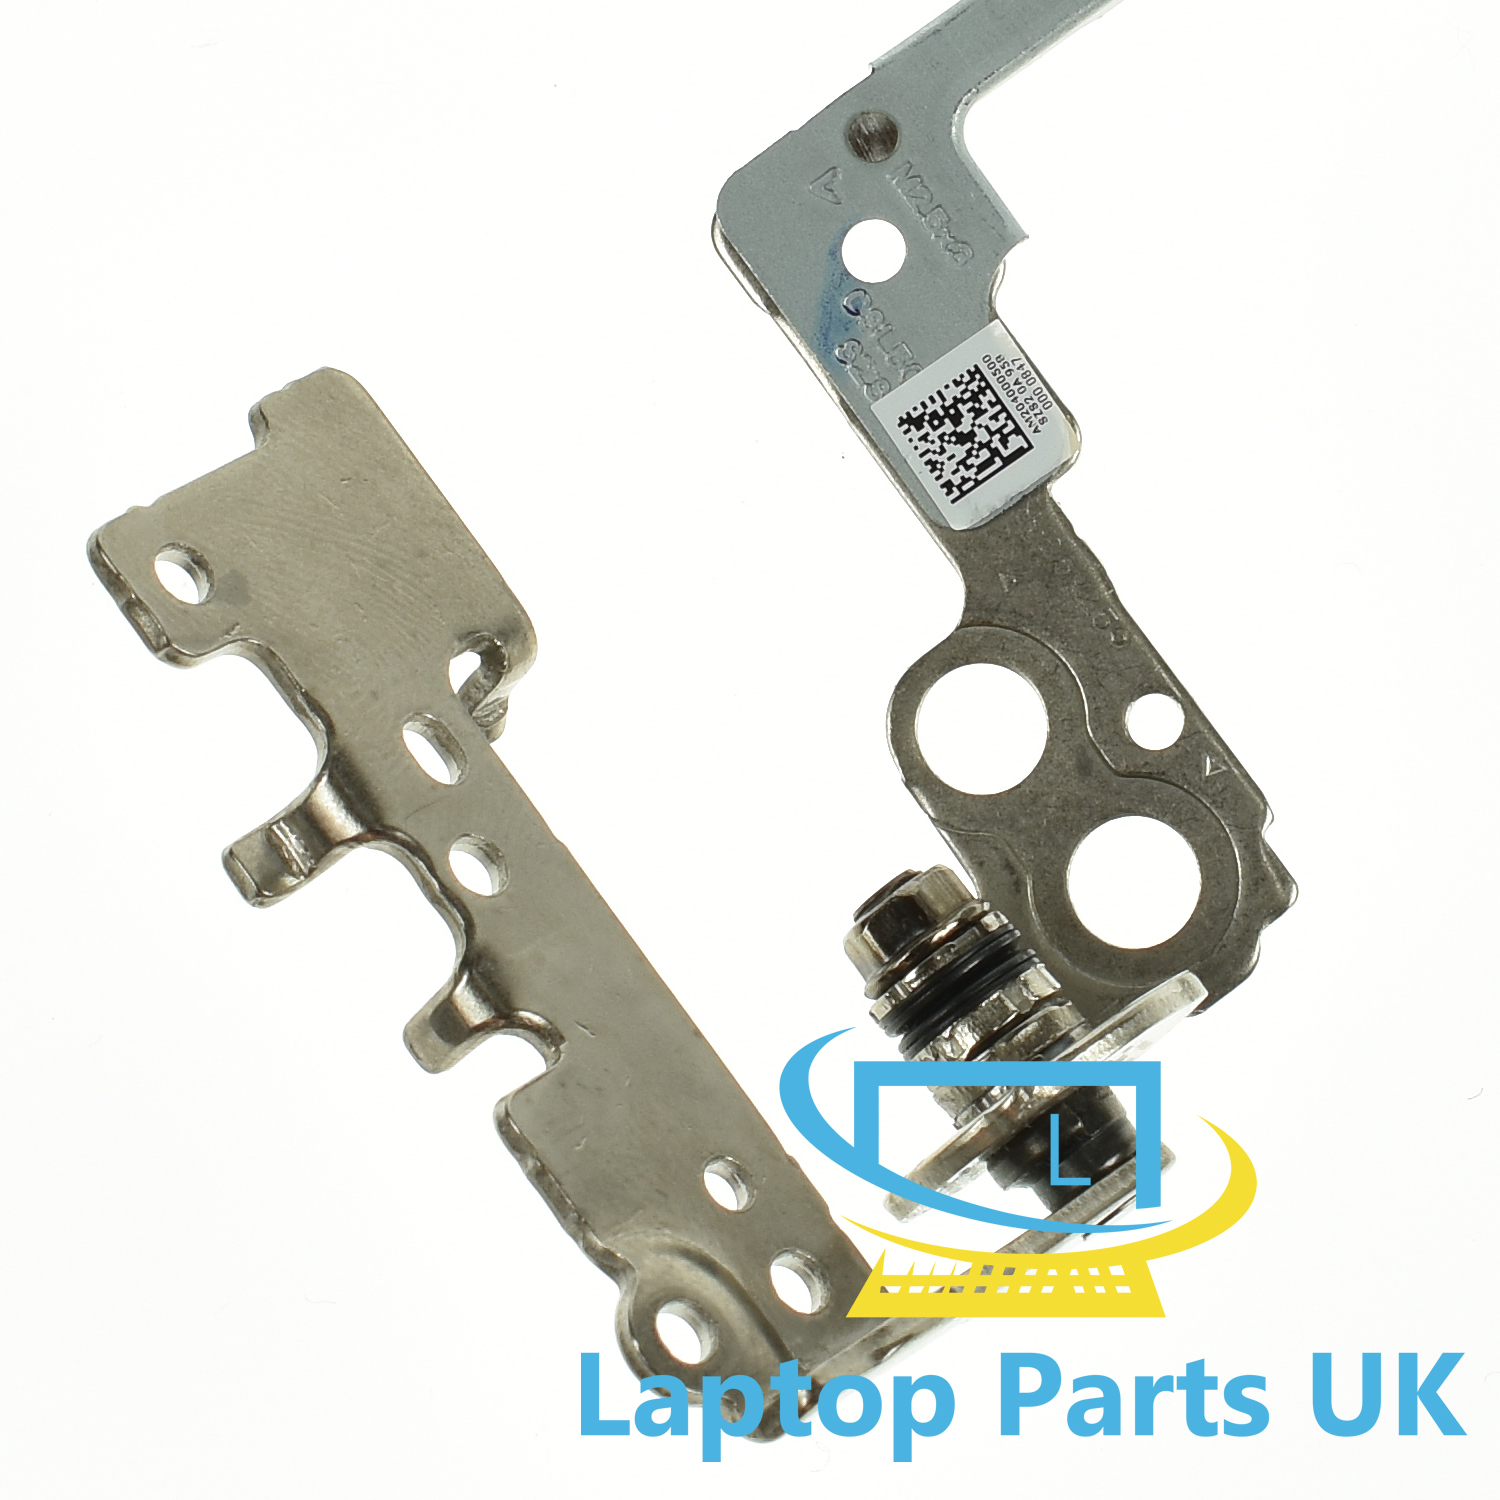 Screen-Hinges-Hp-255-G6-LED-LCD-Display-Brackets-Left-Right-Set thumbnail 3